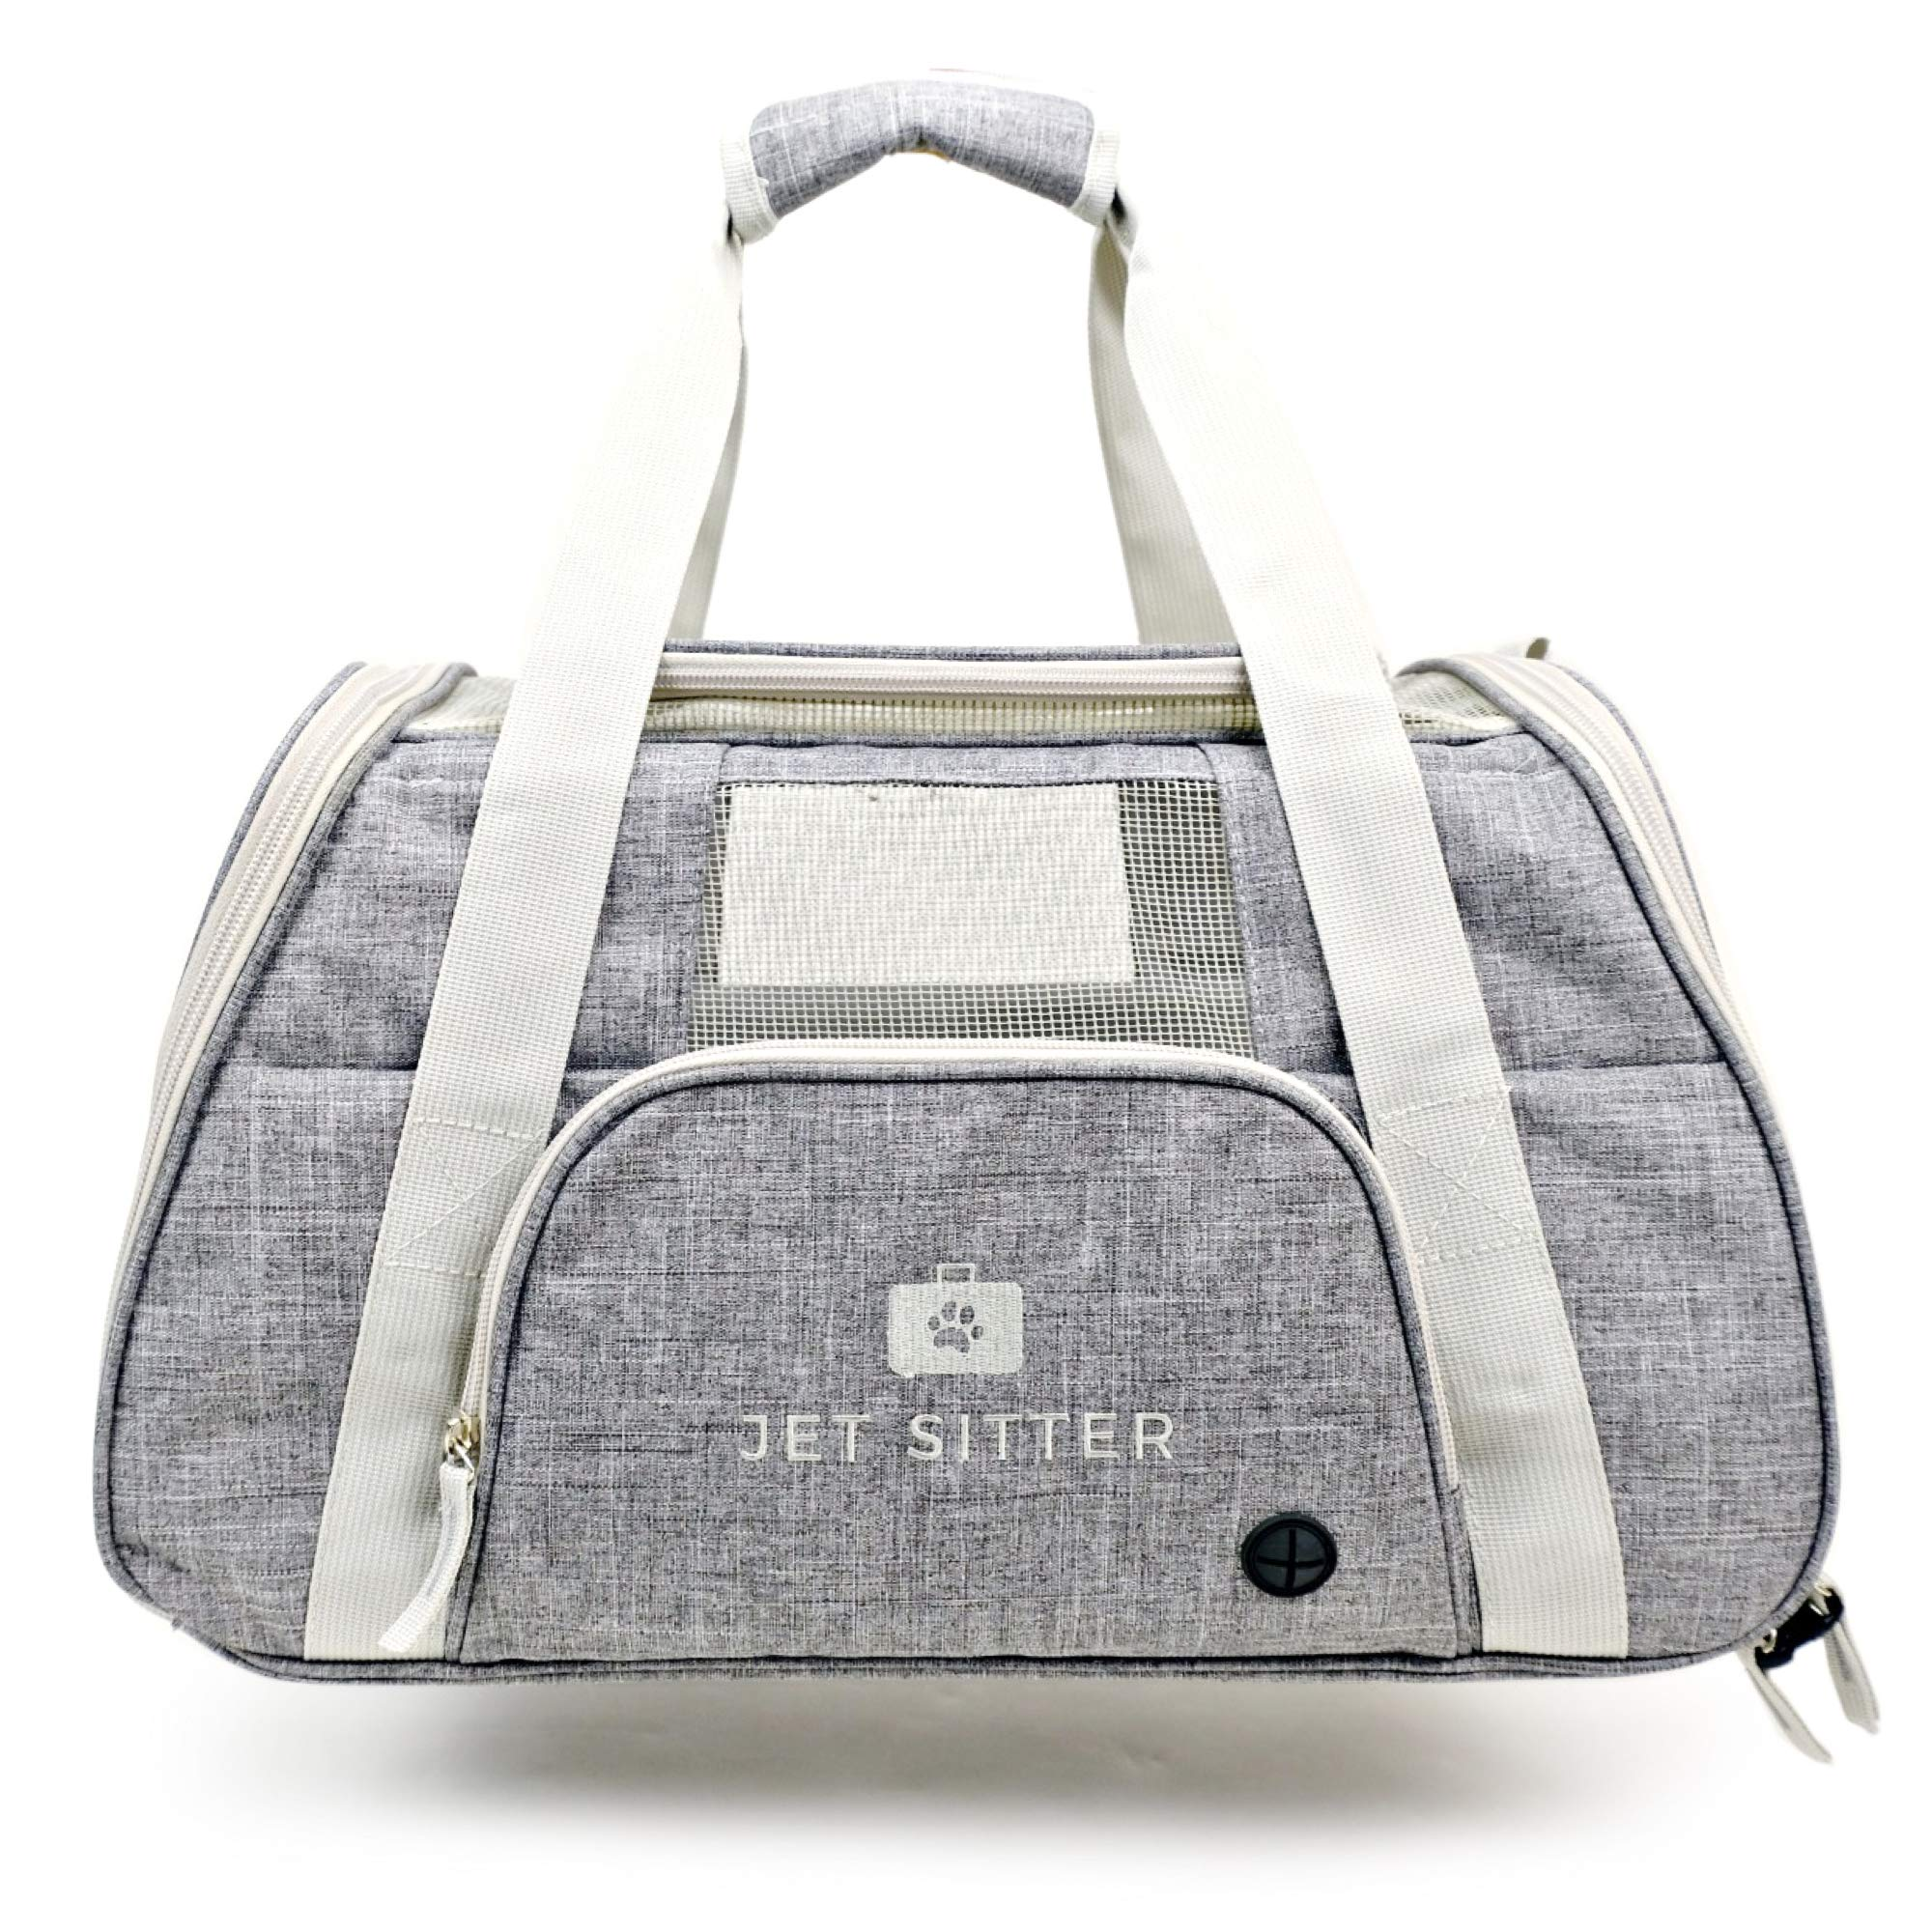 Jet Sitter Super Fly V4 Airline Approved Soft Sided Pet Carrier Bag for Small Dogs Cats (Fancy Grey)